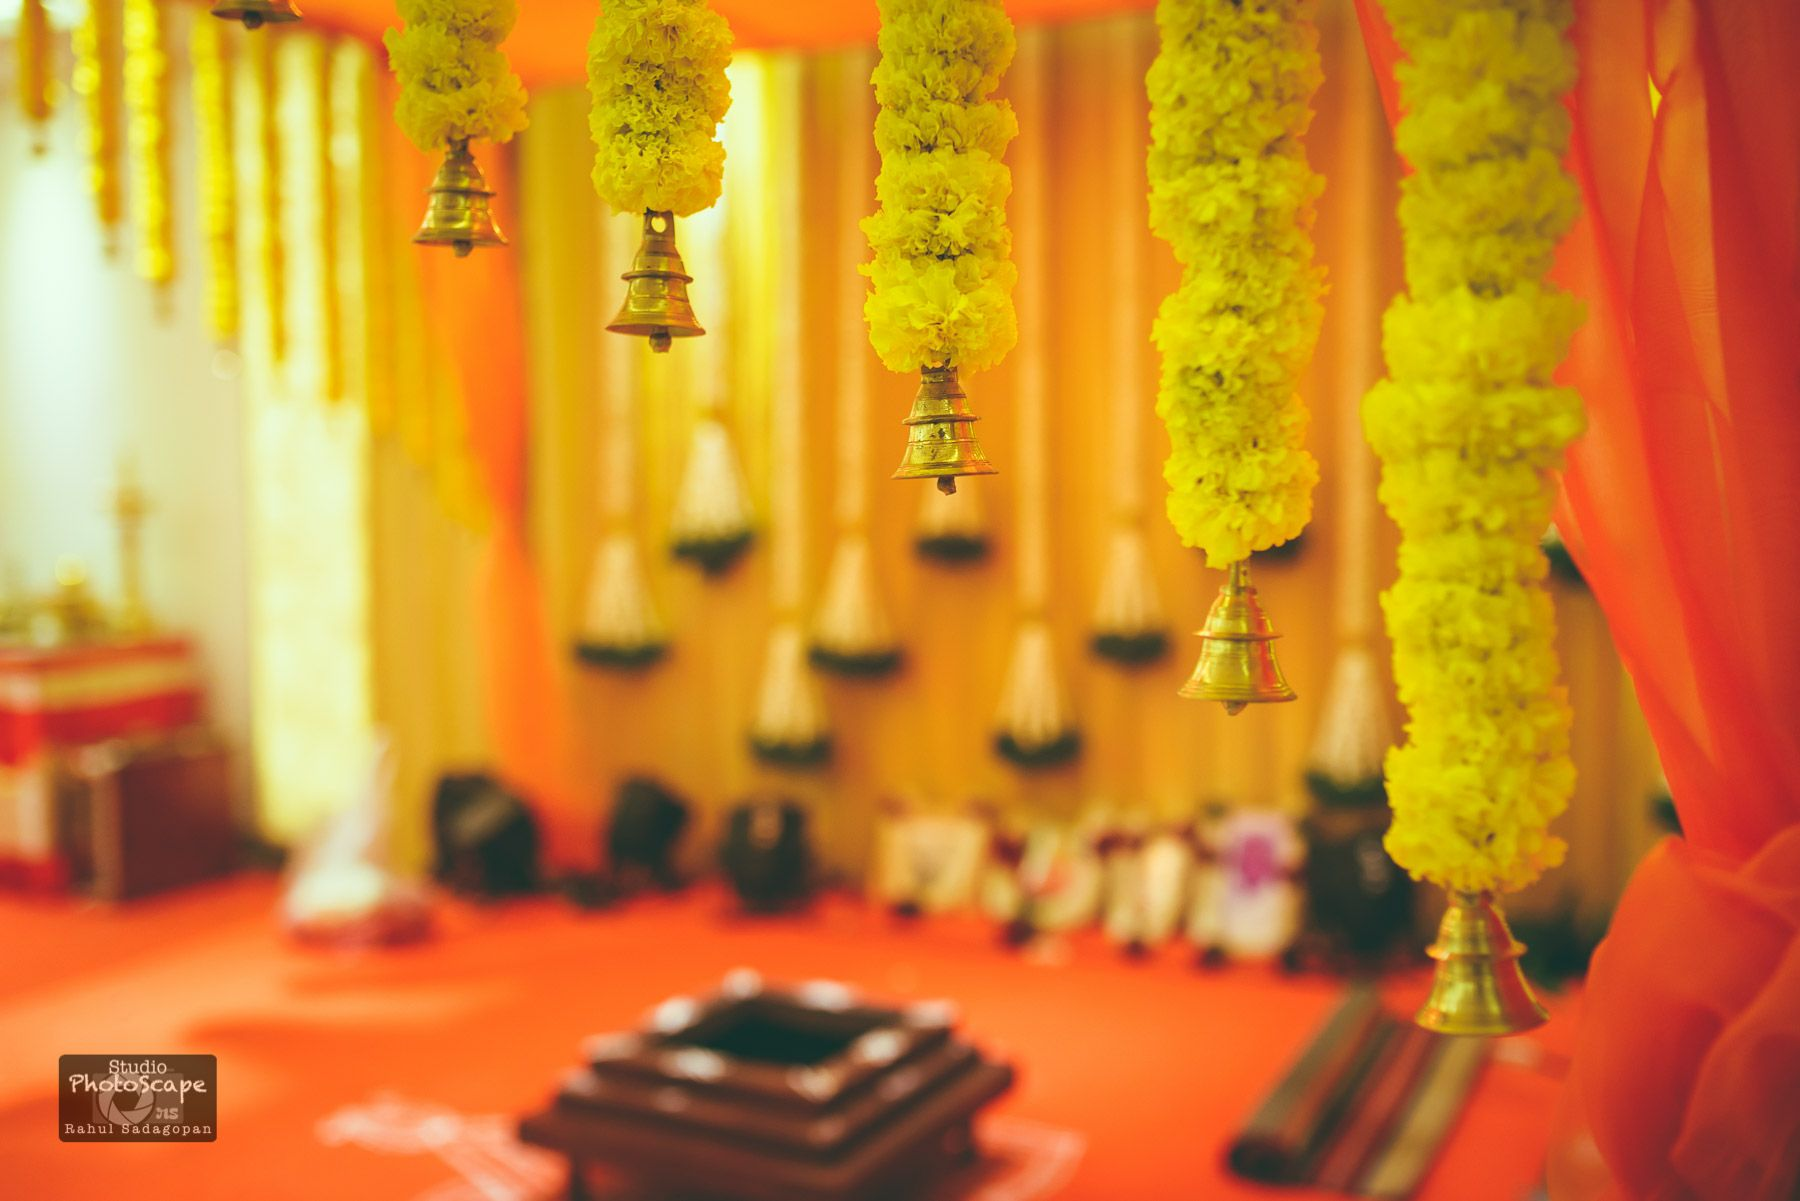 south indian wedding blog, marigold tales, south indian wedding decor